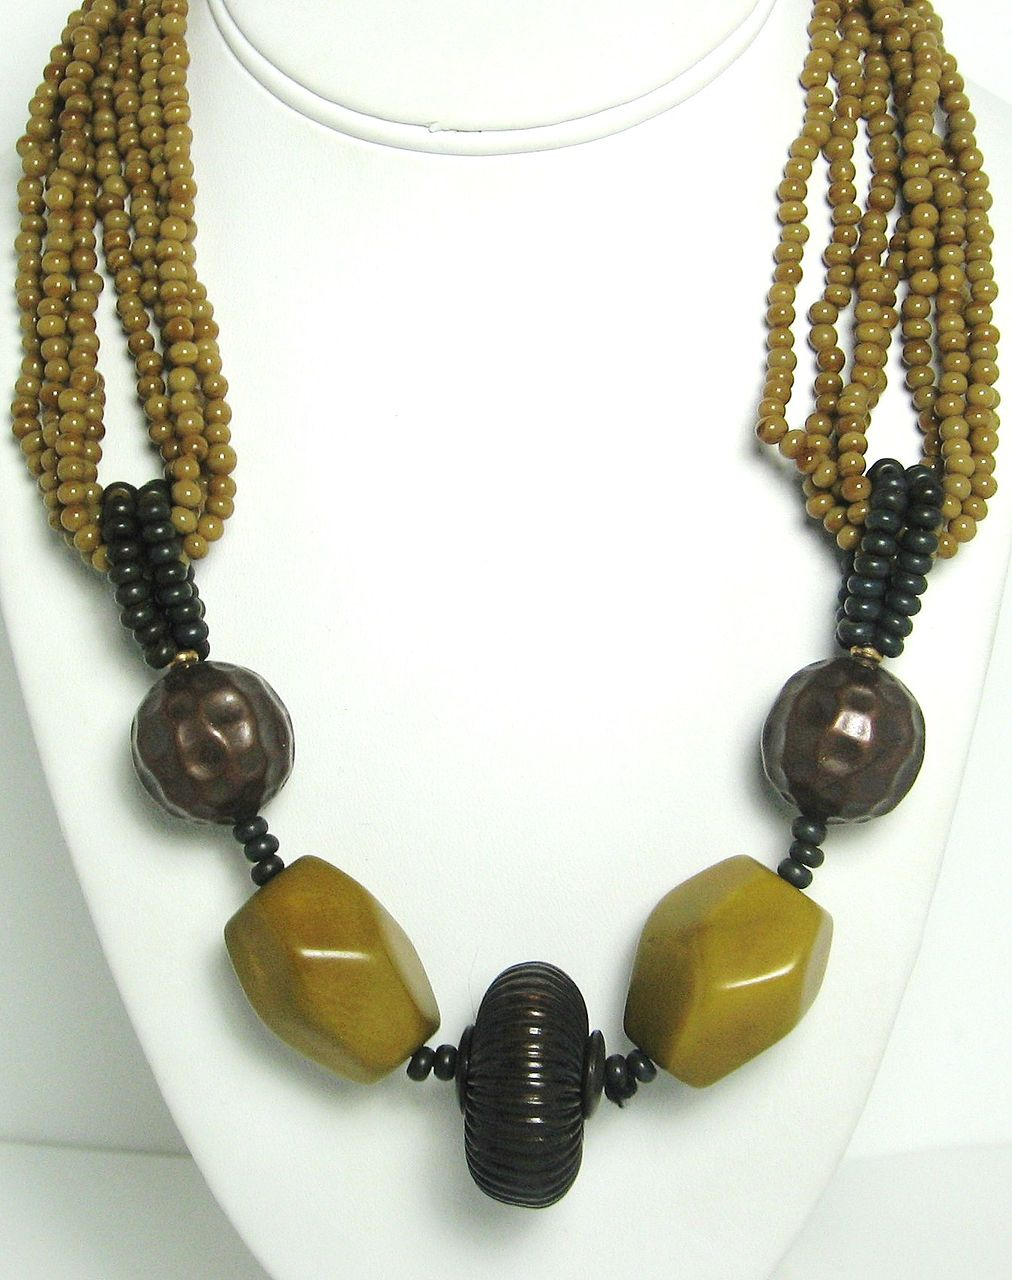 Four Strand Hattie Carnegie Glass Beaded Necklace